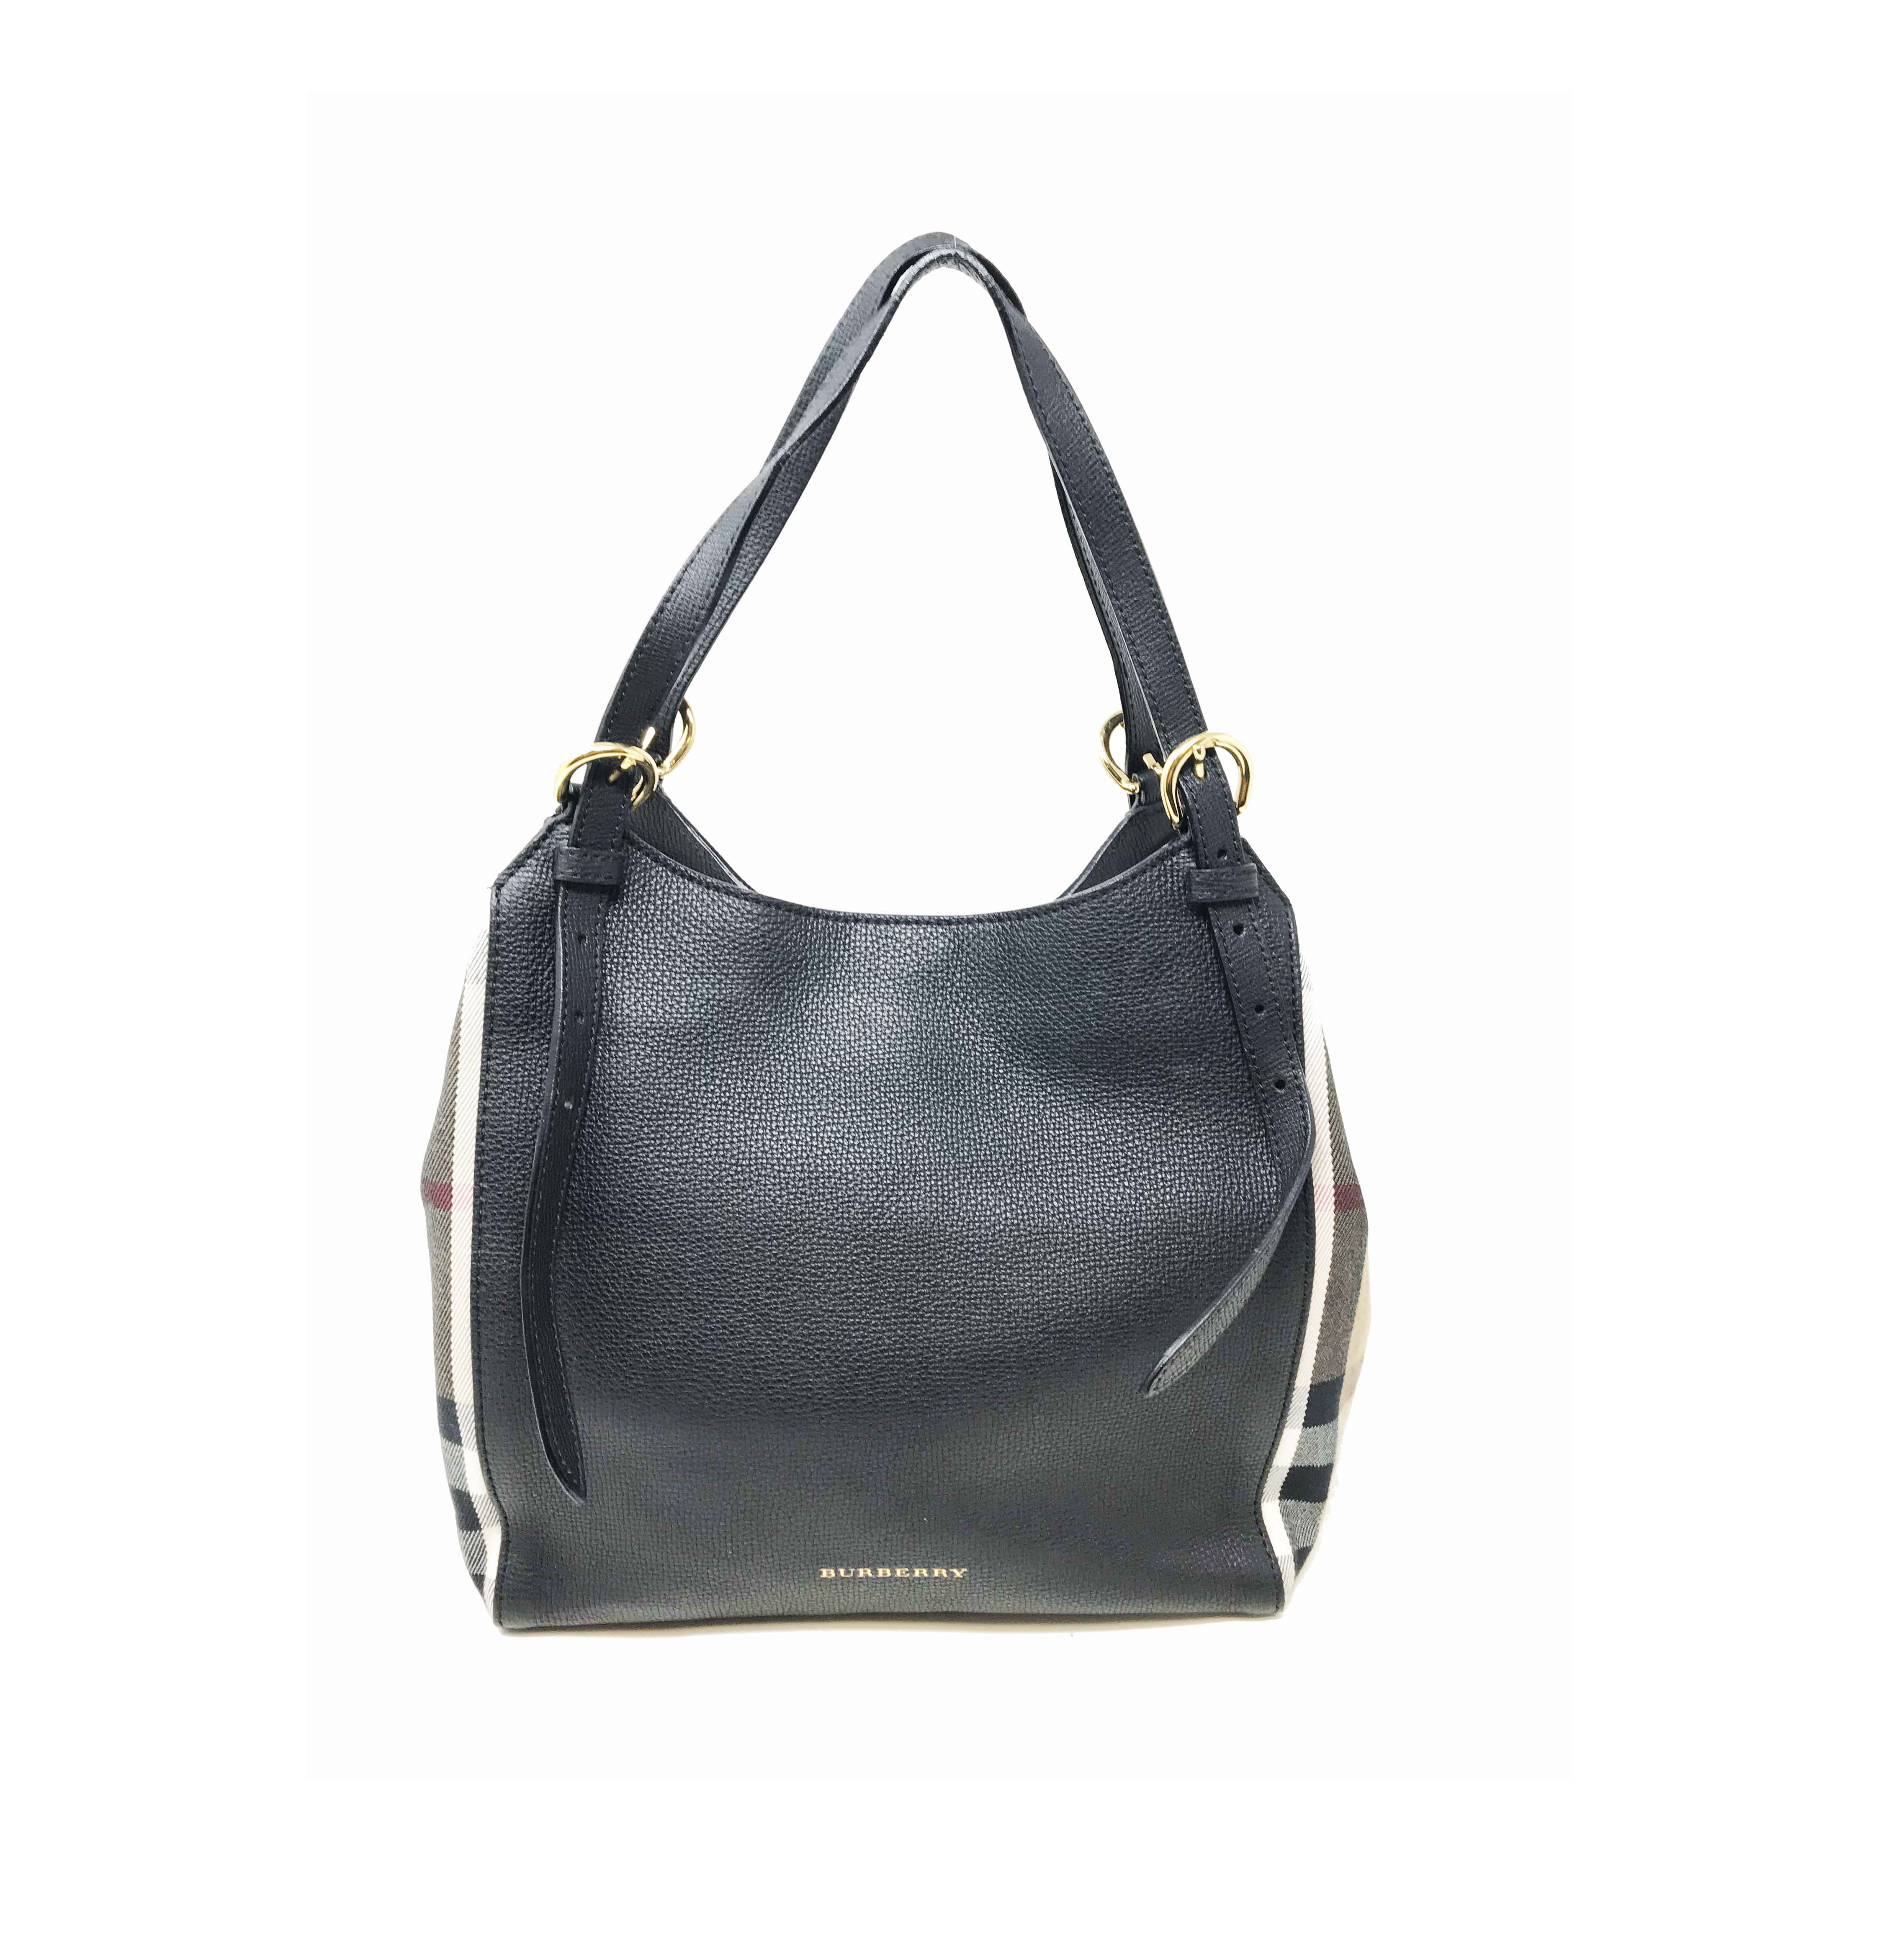 f8d2e286aff Burberry 39589751 The Small Canter in Leather and House Check Ladies Tote  Bag